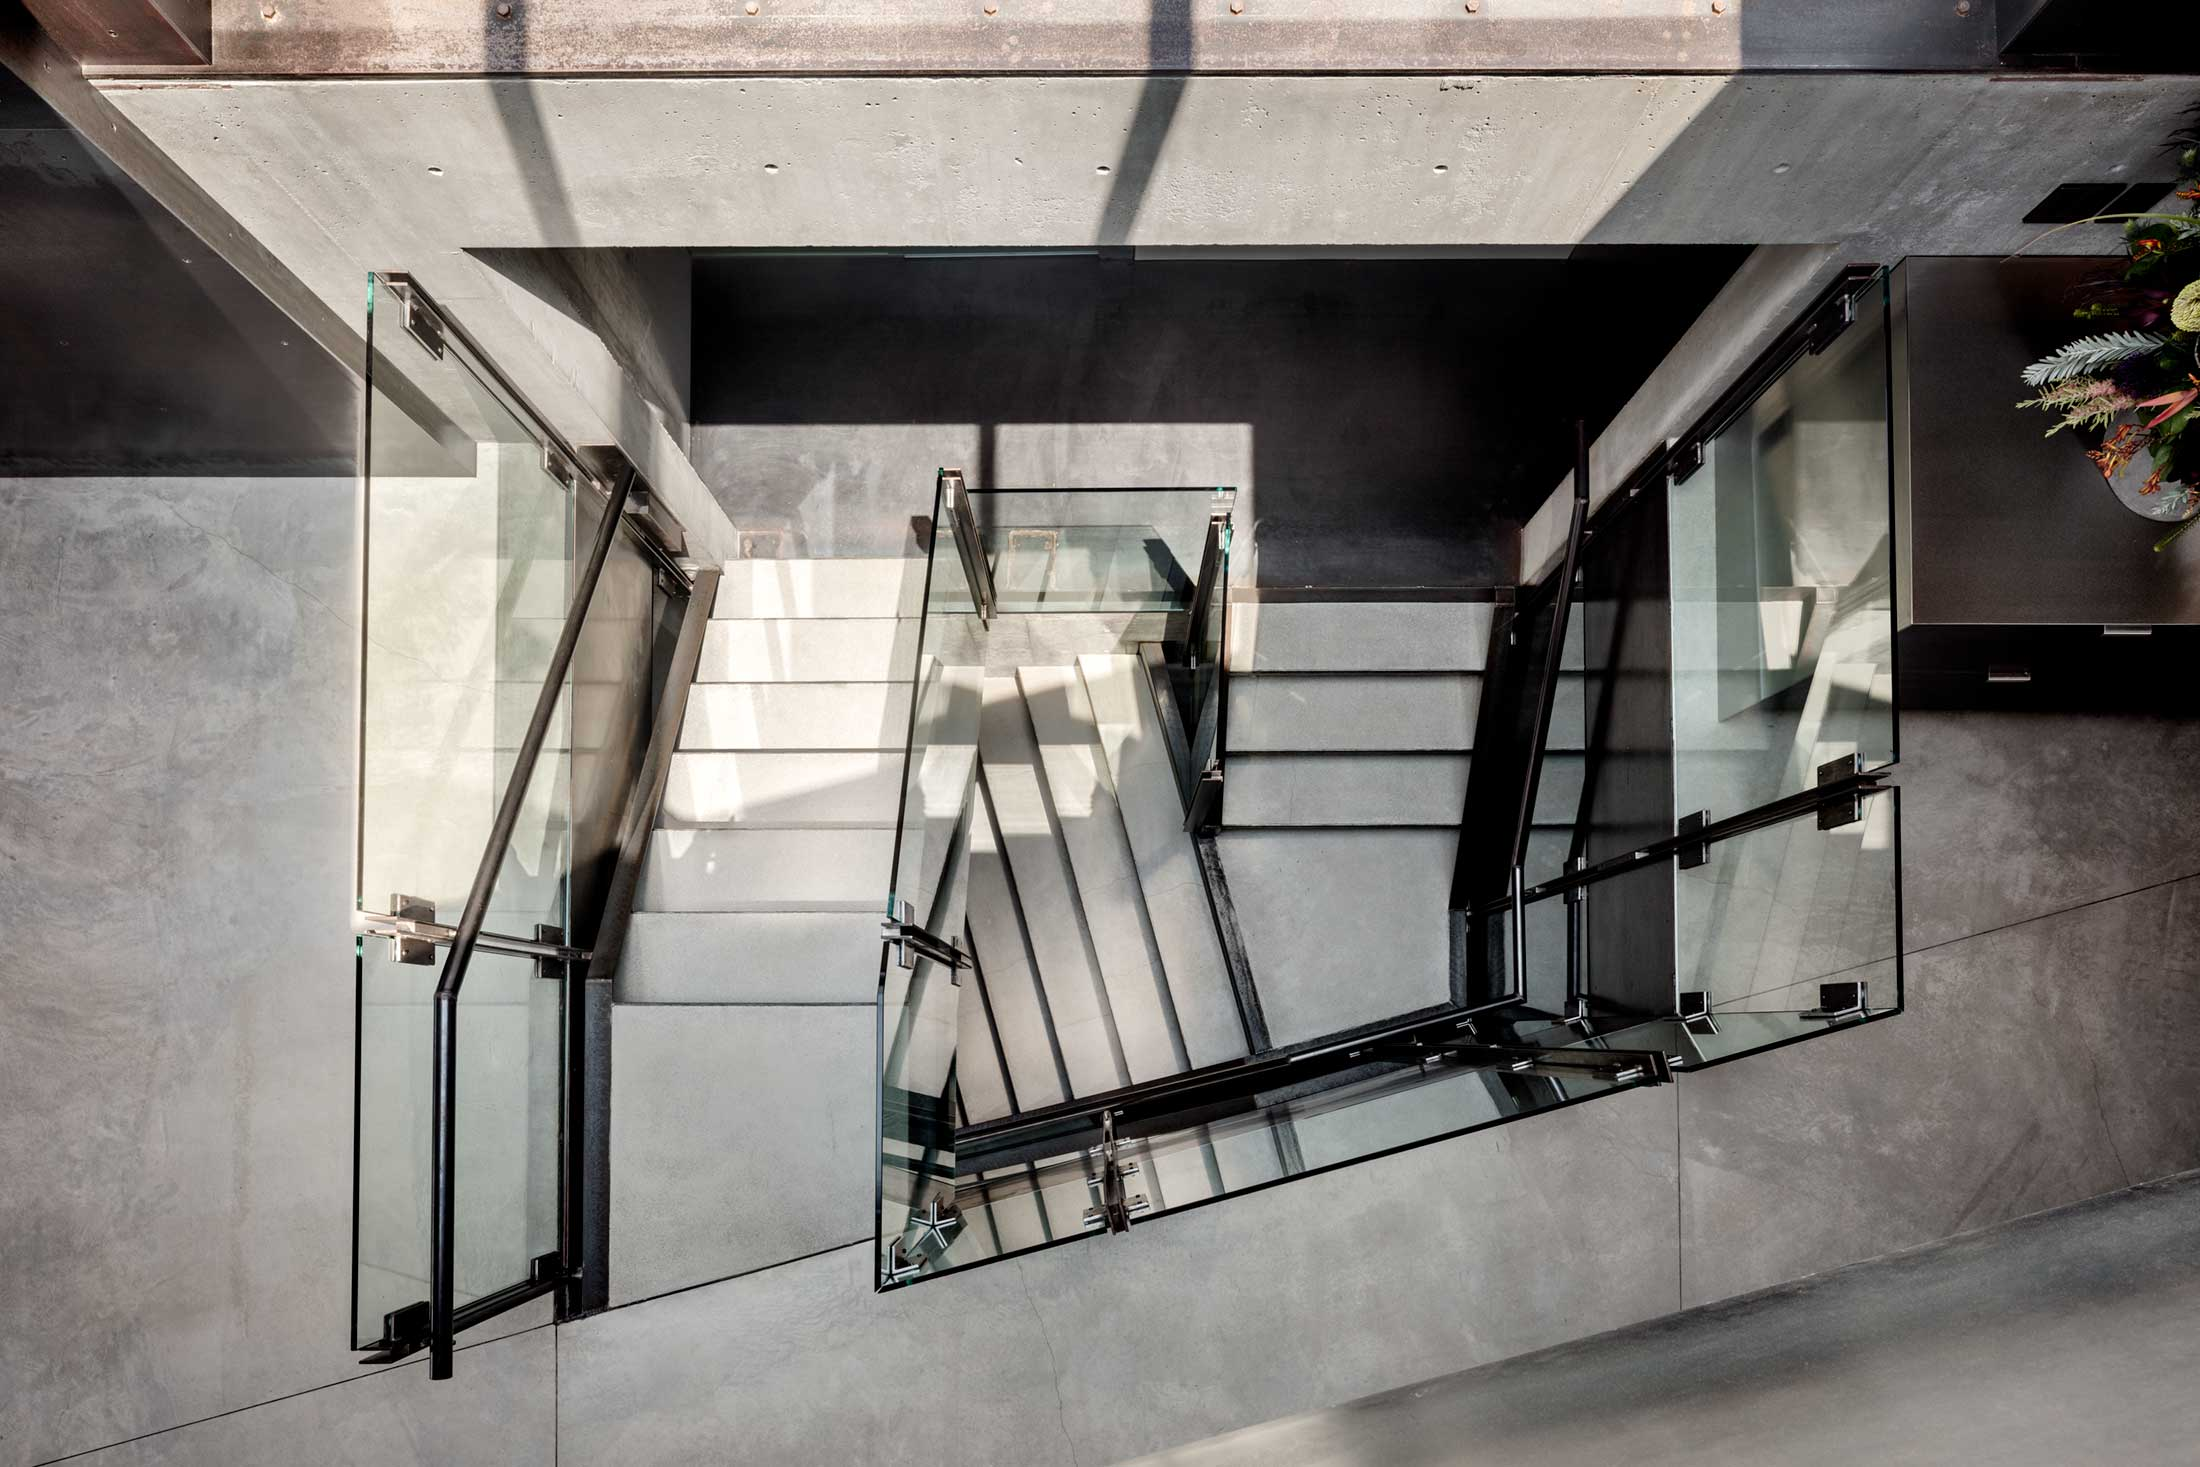 modern-architecture-residential-stairwell-concrete-california-shubindonaldson-skyline-2